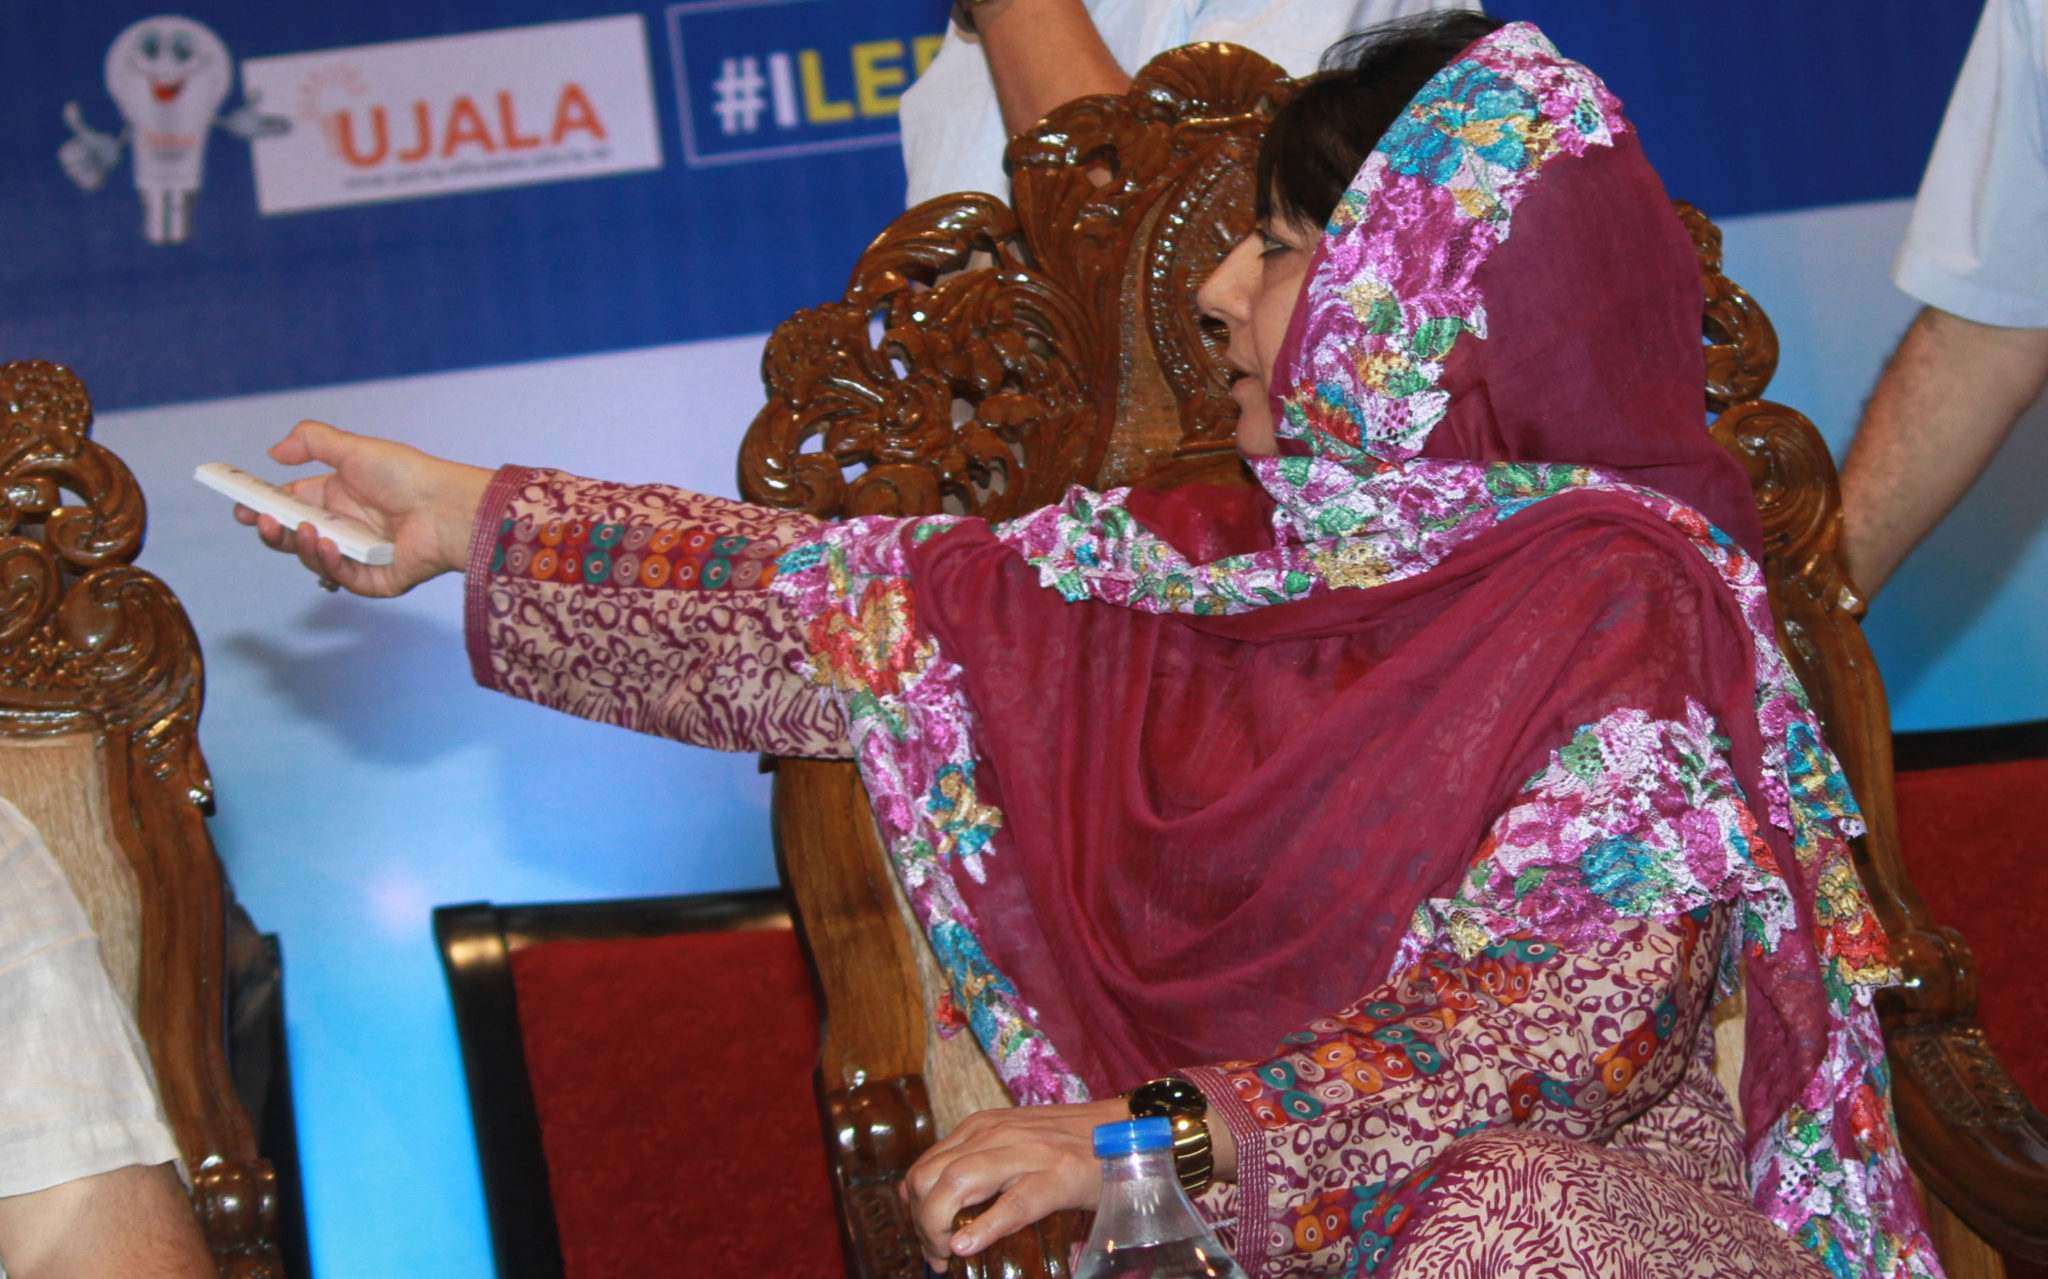 Chief Minister Mehbooba Mufti along with Speaker JK Assembly Kavinder Gupta and Deputy Chief Minister JK Nirmal Singh Launch the LED UJALA Scheme during a function at Jammu 4